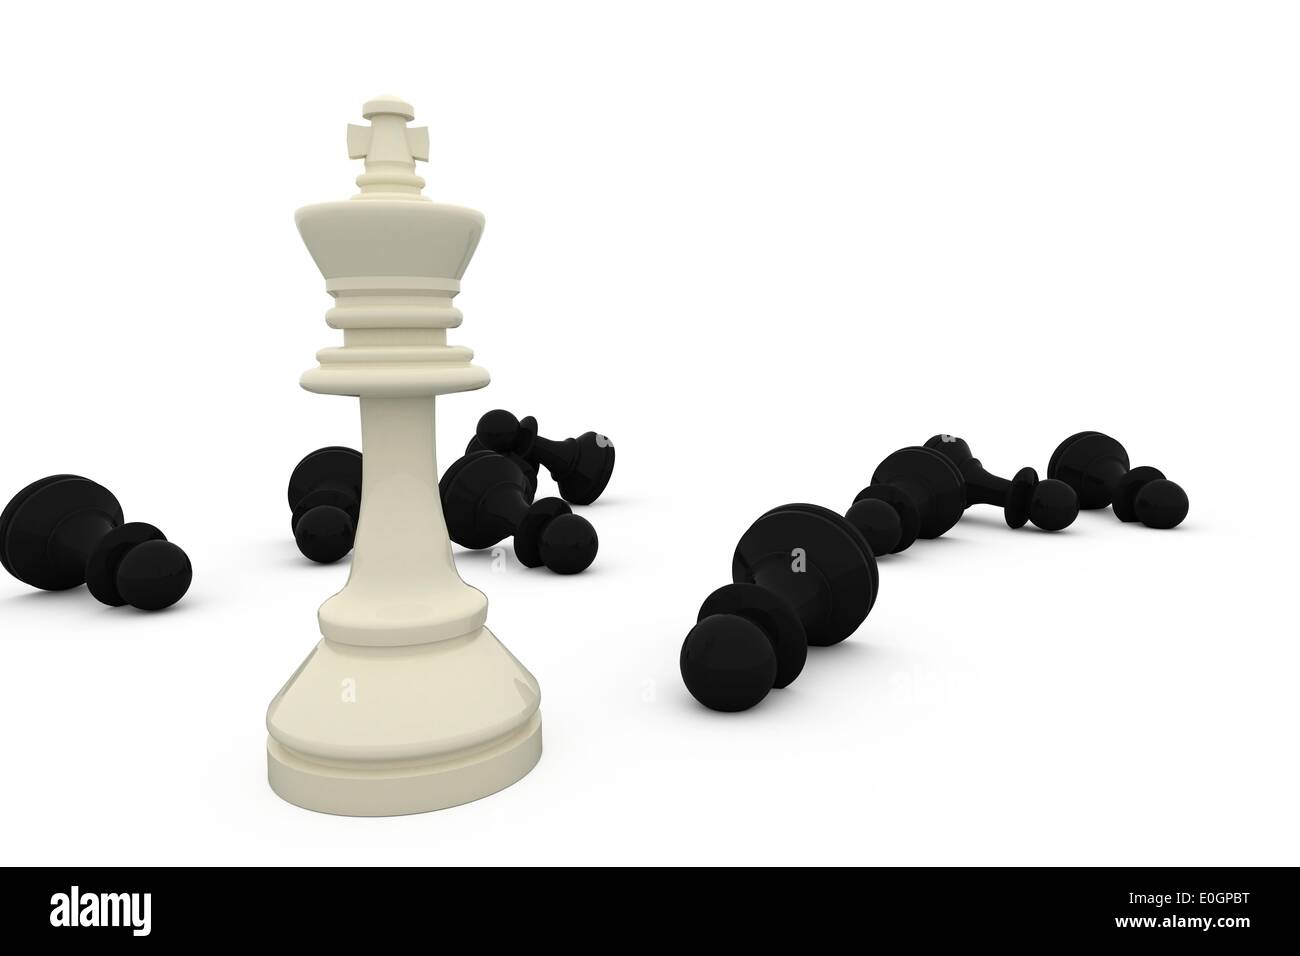 White king standing among fallen black pieces - Stock Image